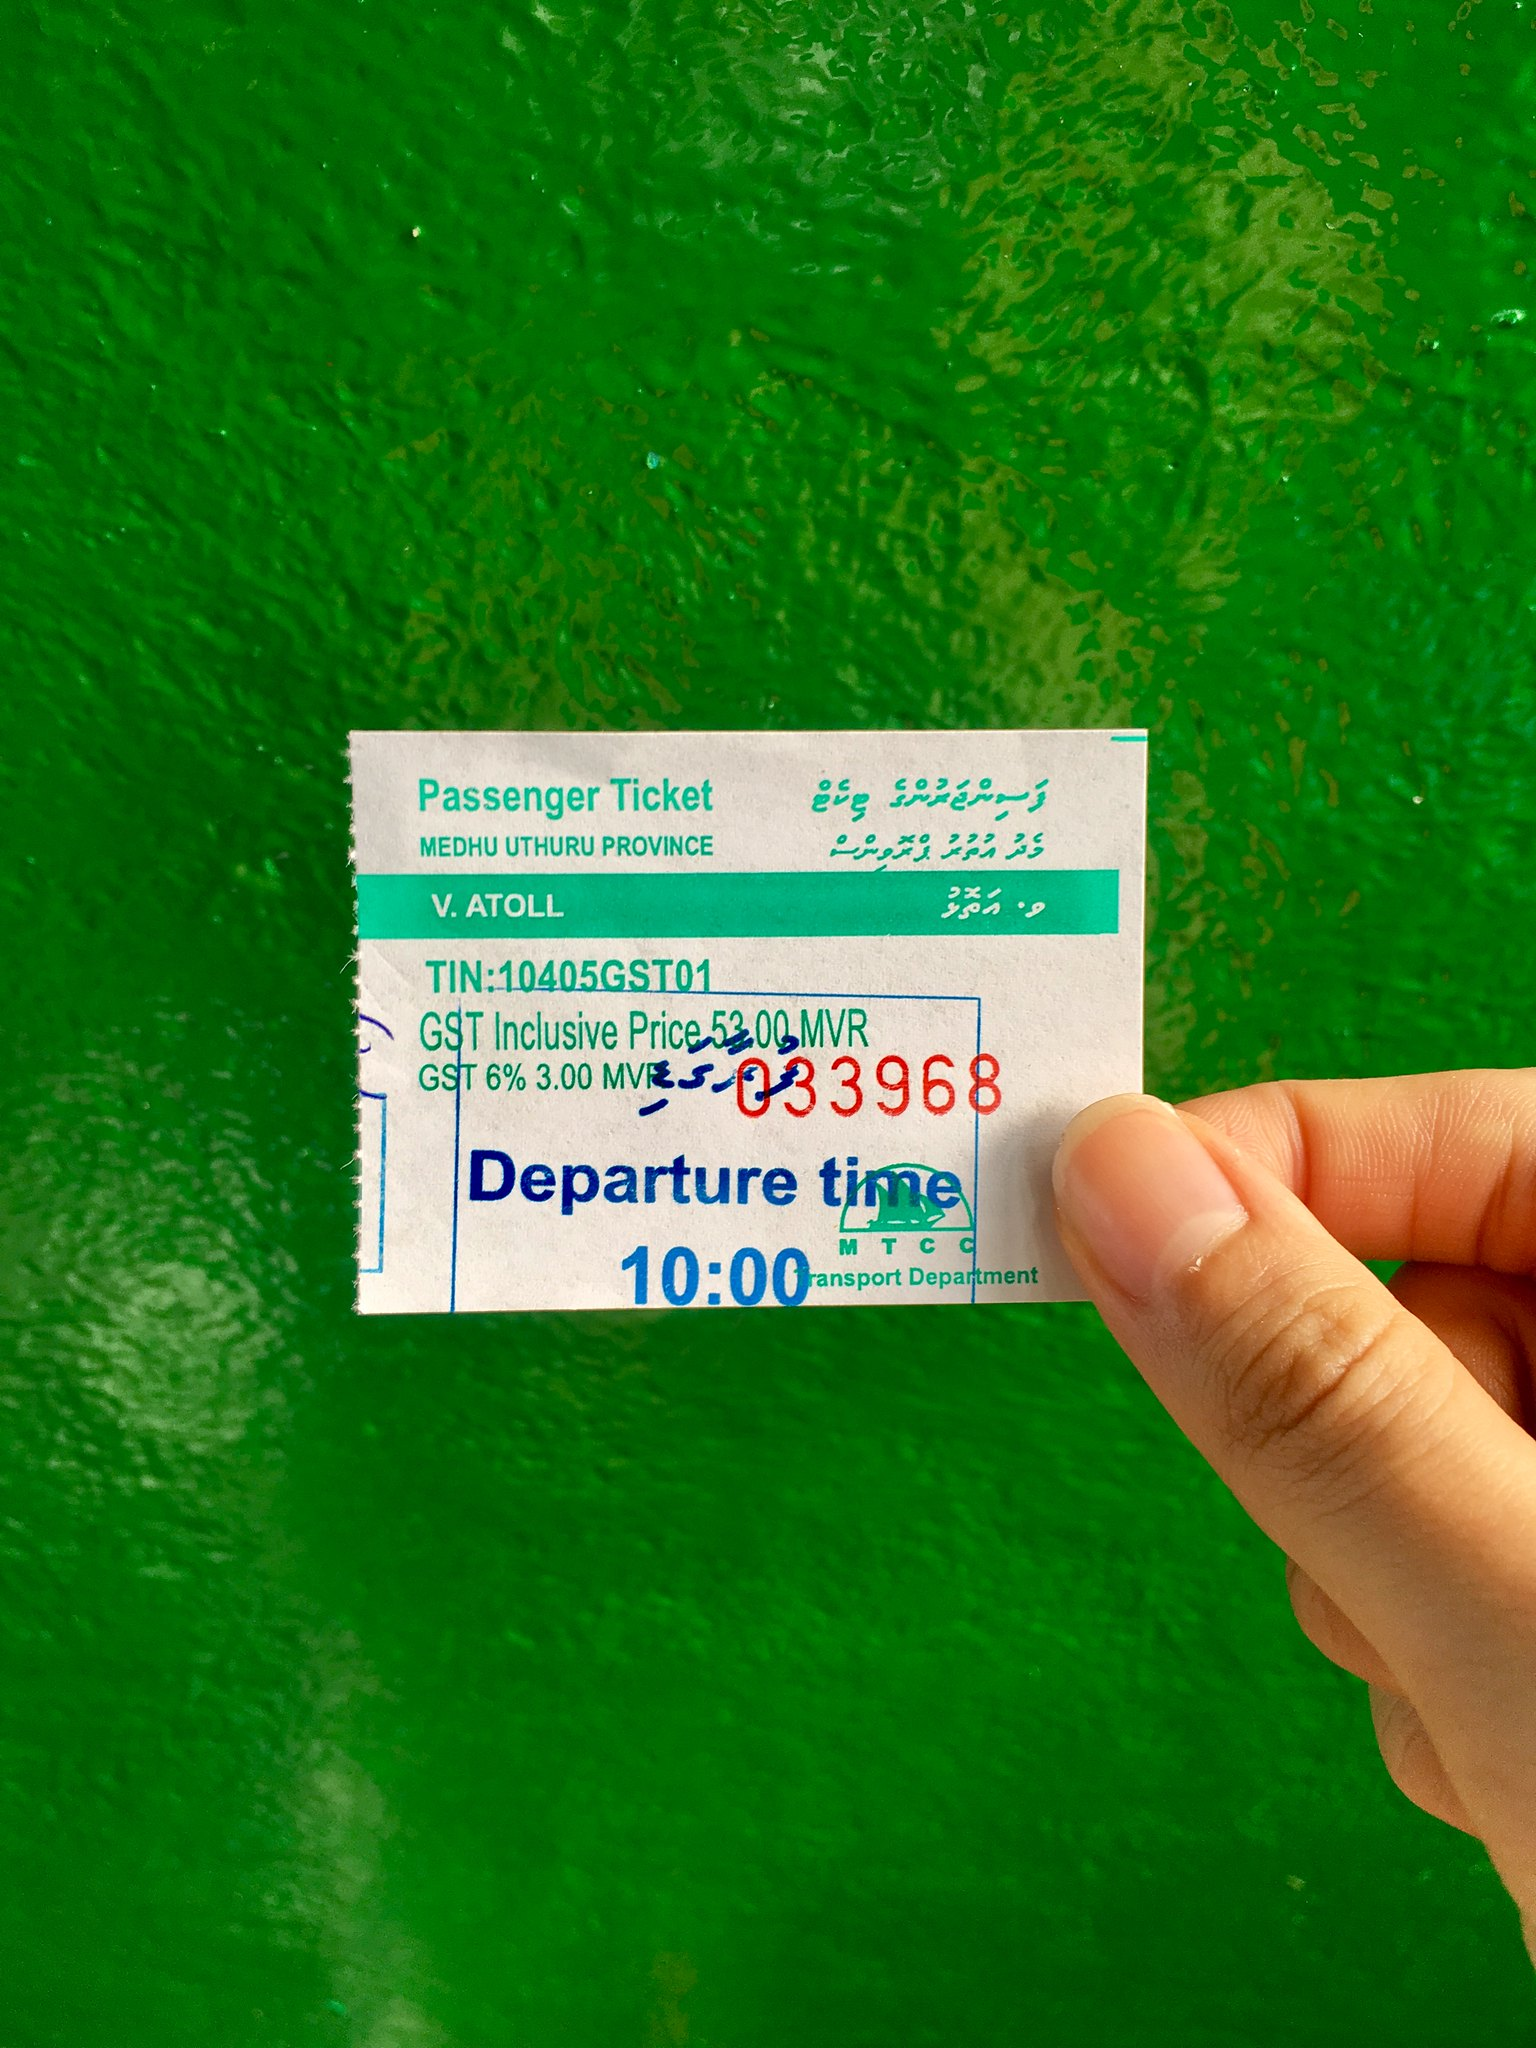 Maldives public ferry ticket